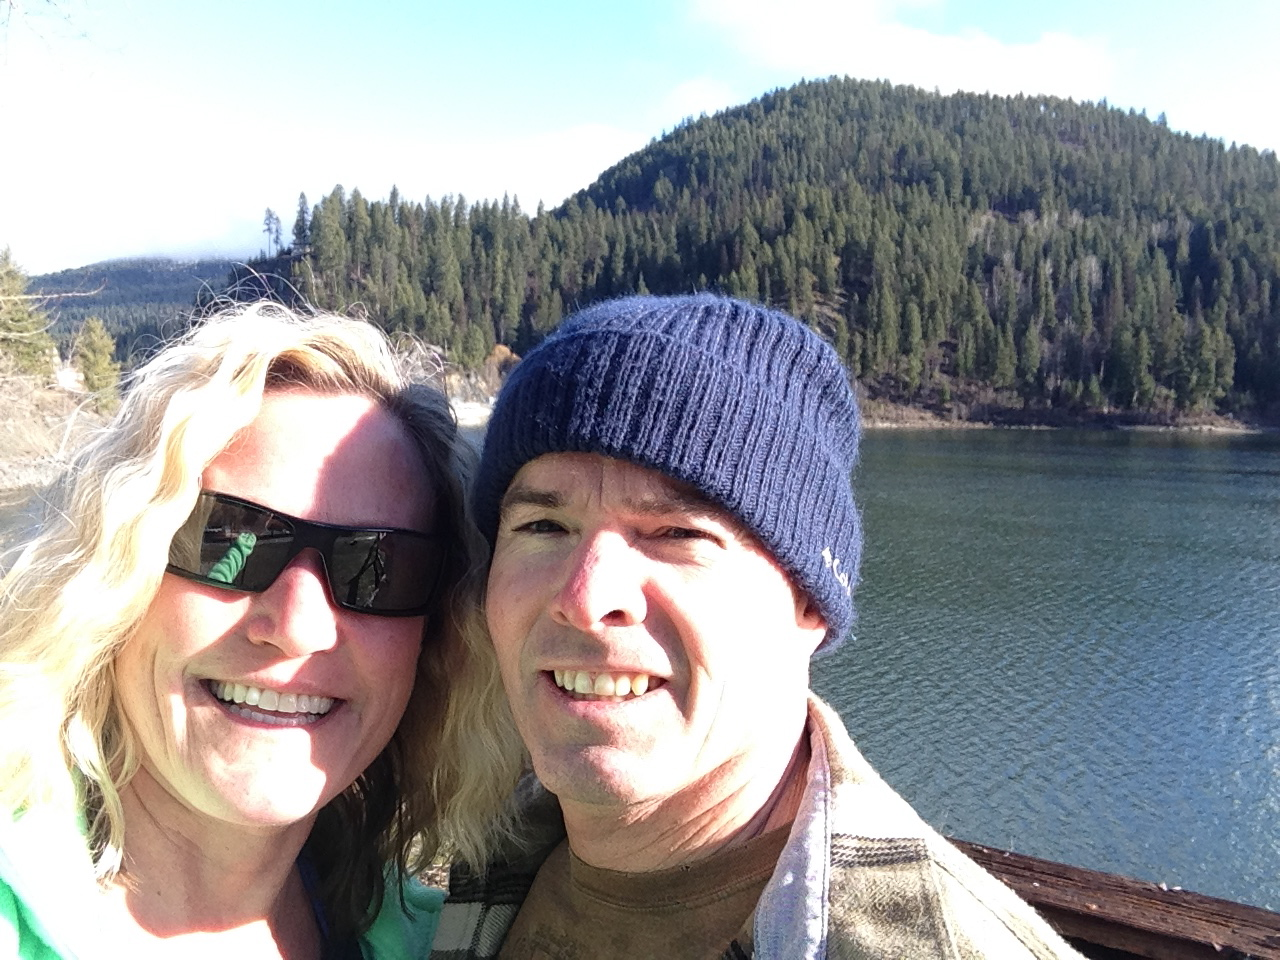 We took a Sunday drive up to the Boundary Dam.